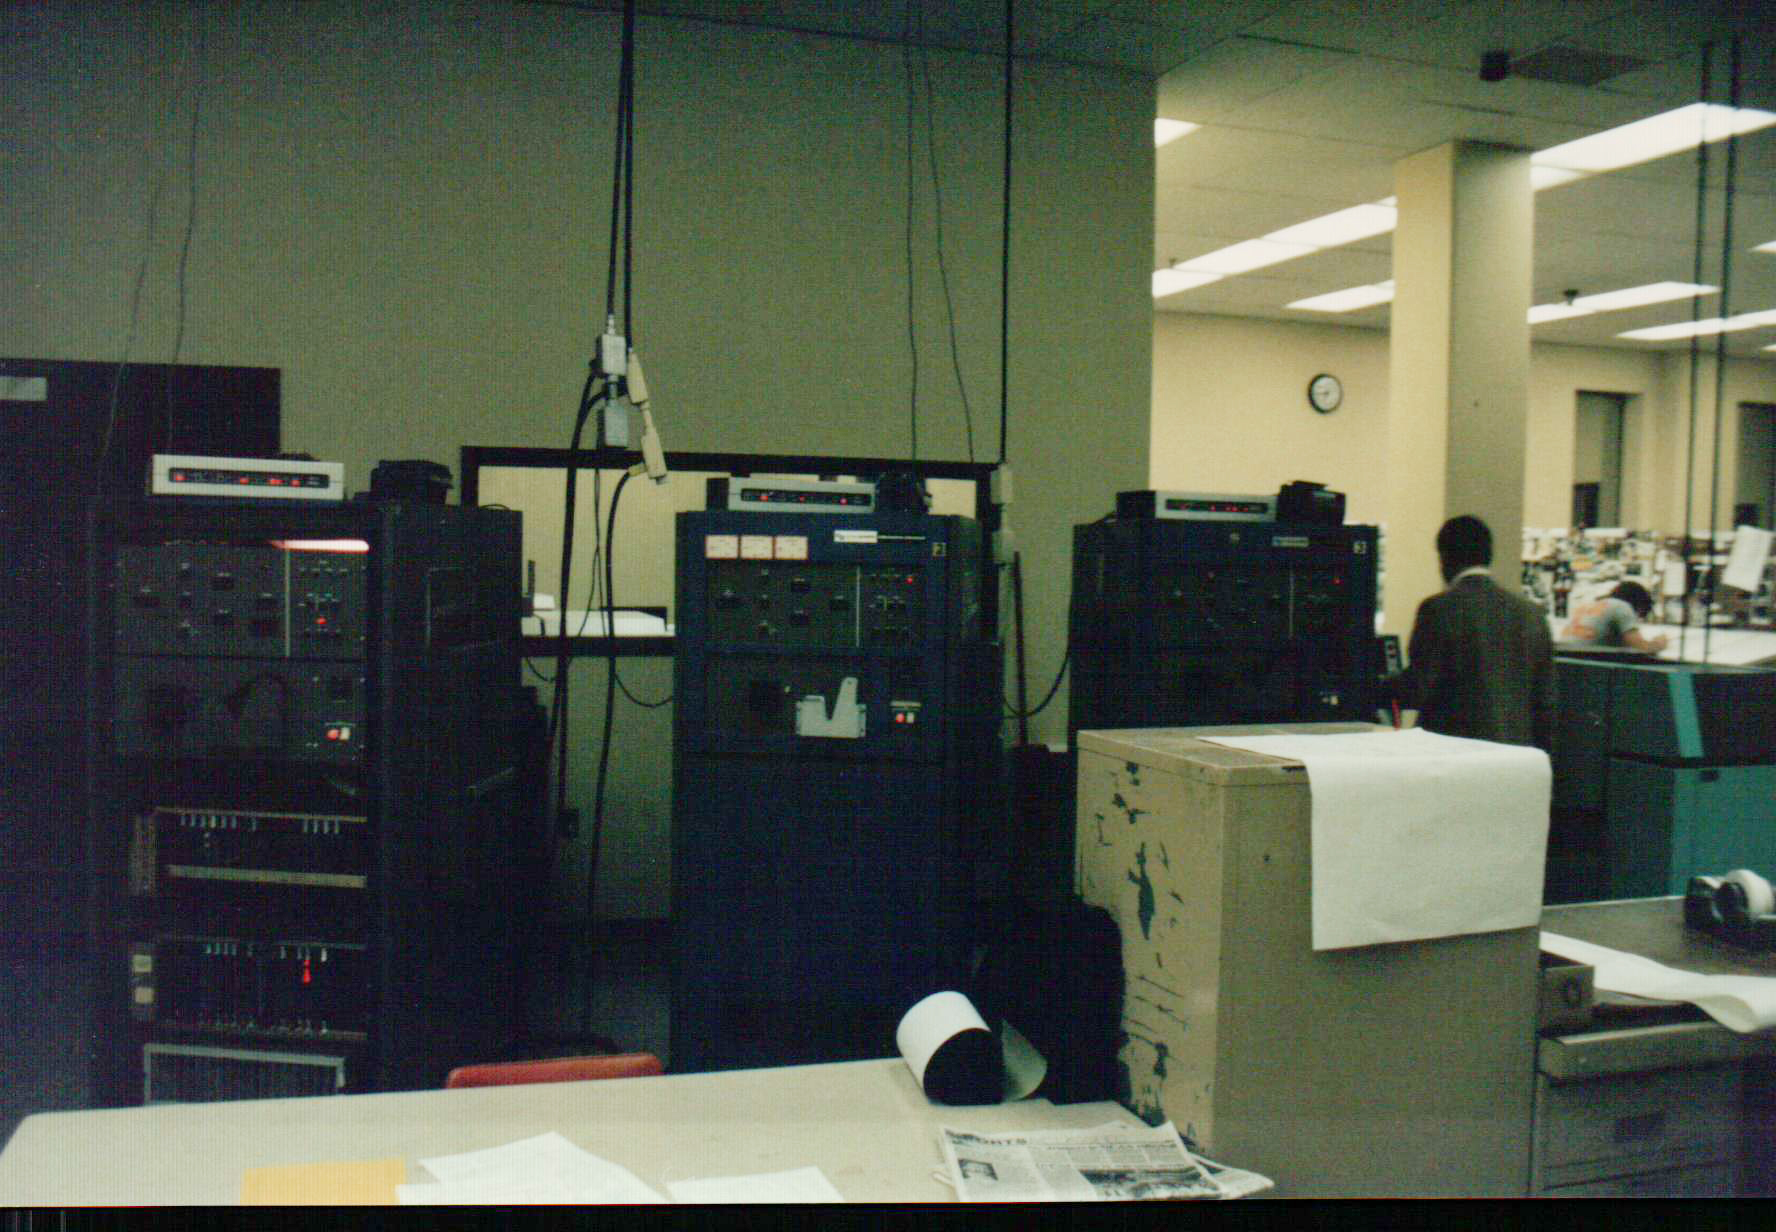 A pair of Compugraphic videosetters. One of my jobs at The Kalamazoo Gazette had me arriving in the dark hours of the morning to operate these machines to produce the cold type that would be pasted up for that day's newspaper.